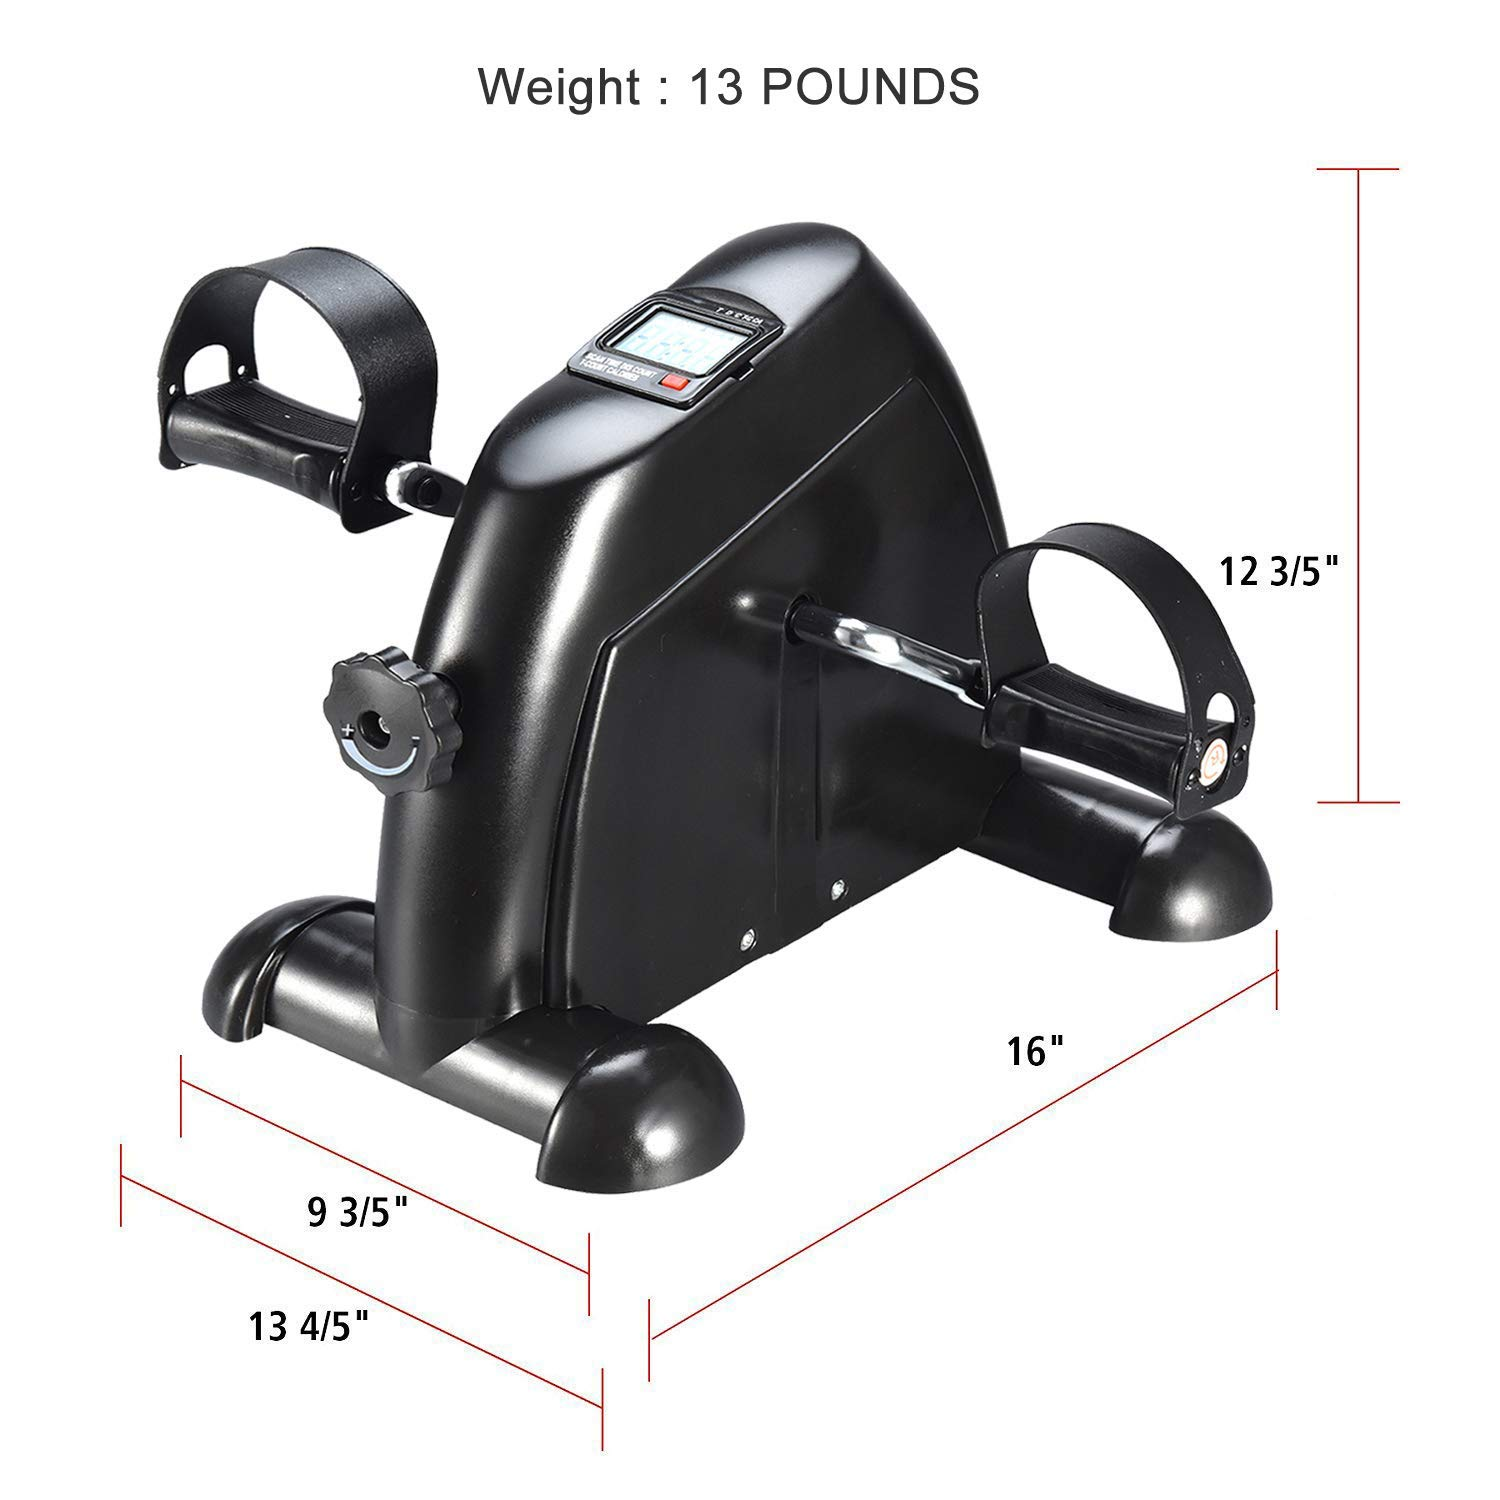 Ozoy Exercise Cycle Portable Mini Home Pedal Gym Fitness Exerciser with Adjustable Resistance LCD Display for Leg Arm Cardio product image